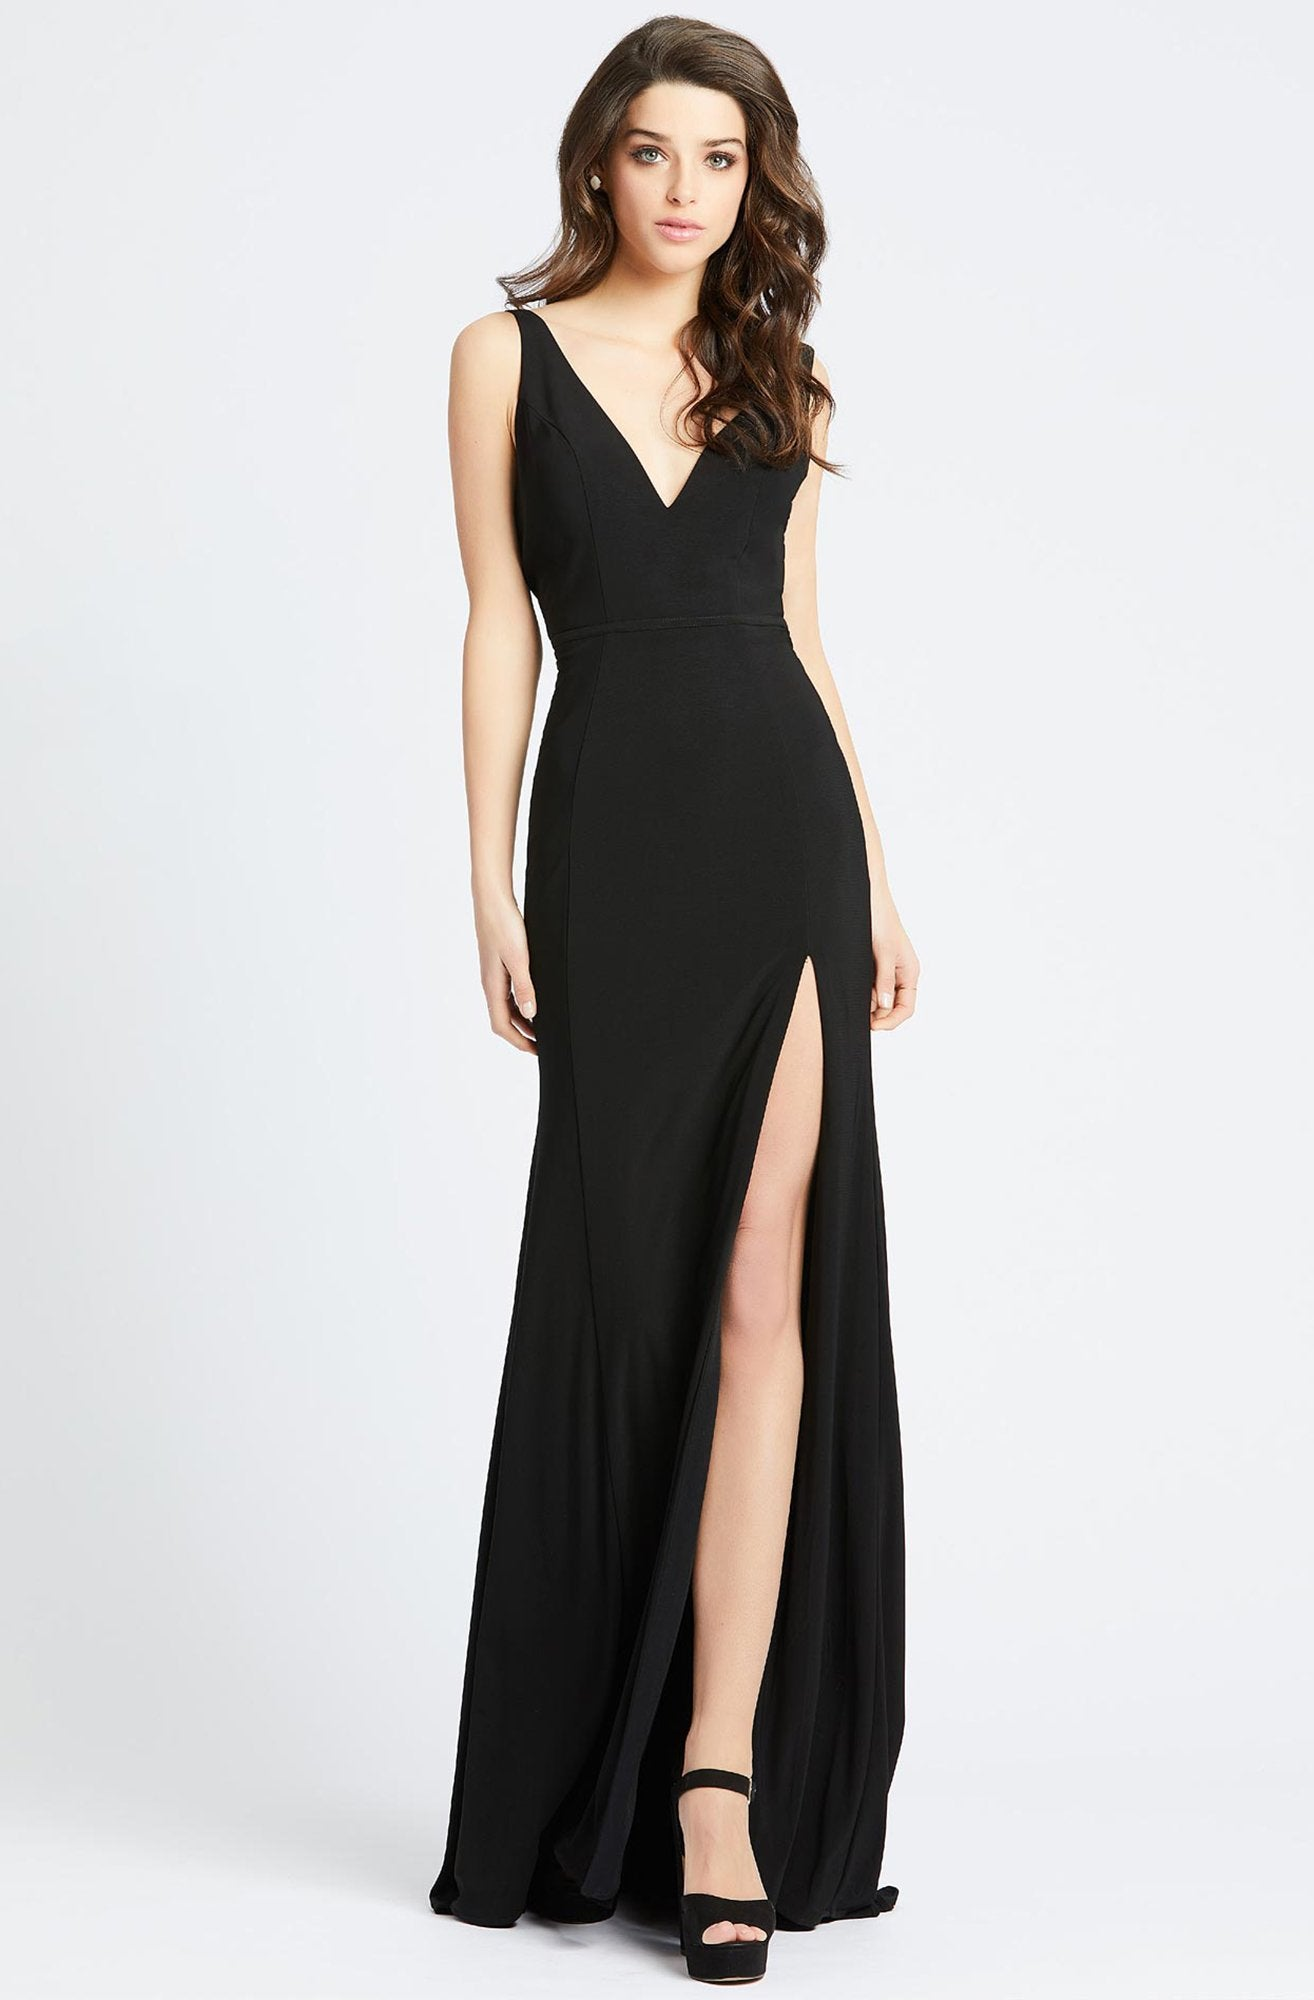 Ieena Duggal - Plunging V-Neck High Slit Sheath Gown 25846I In Black